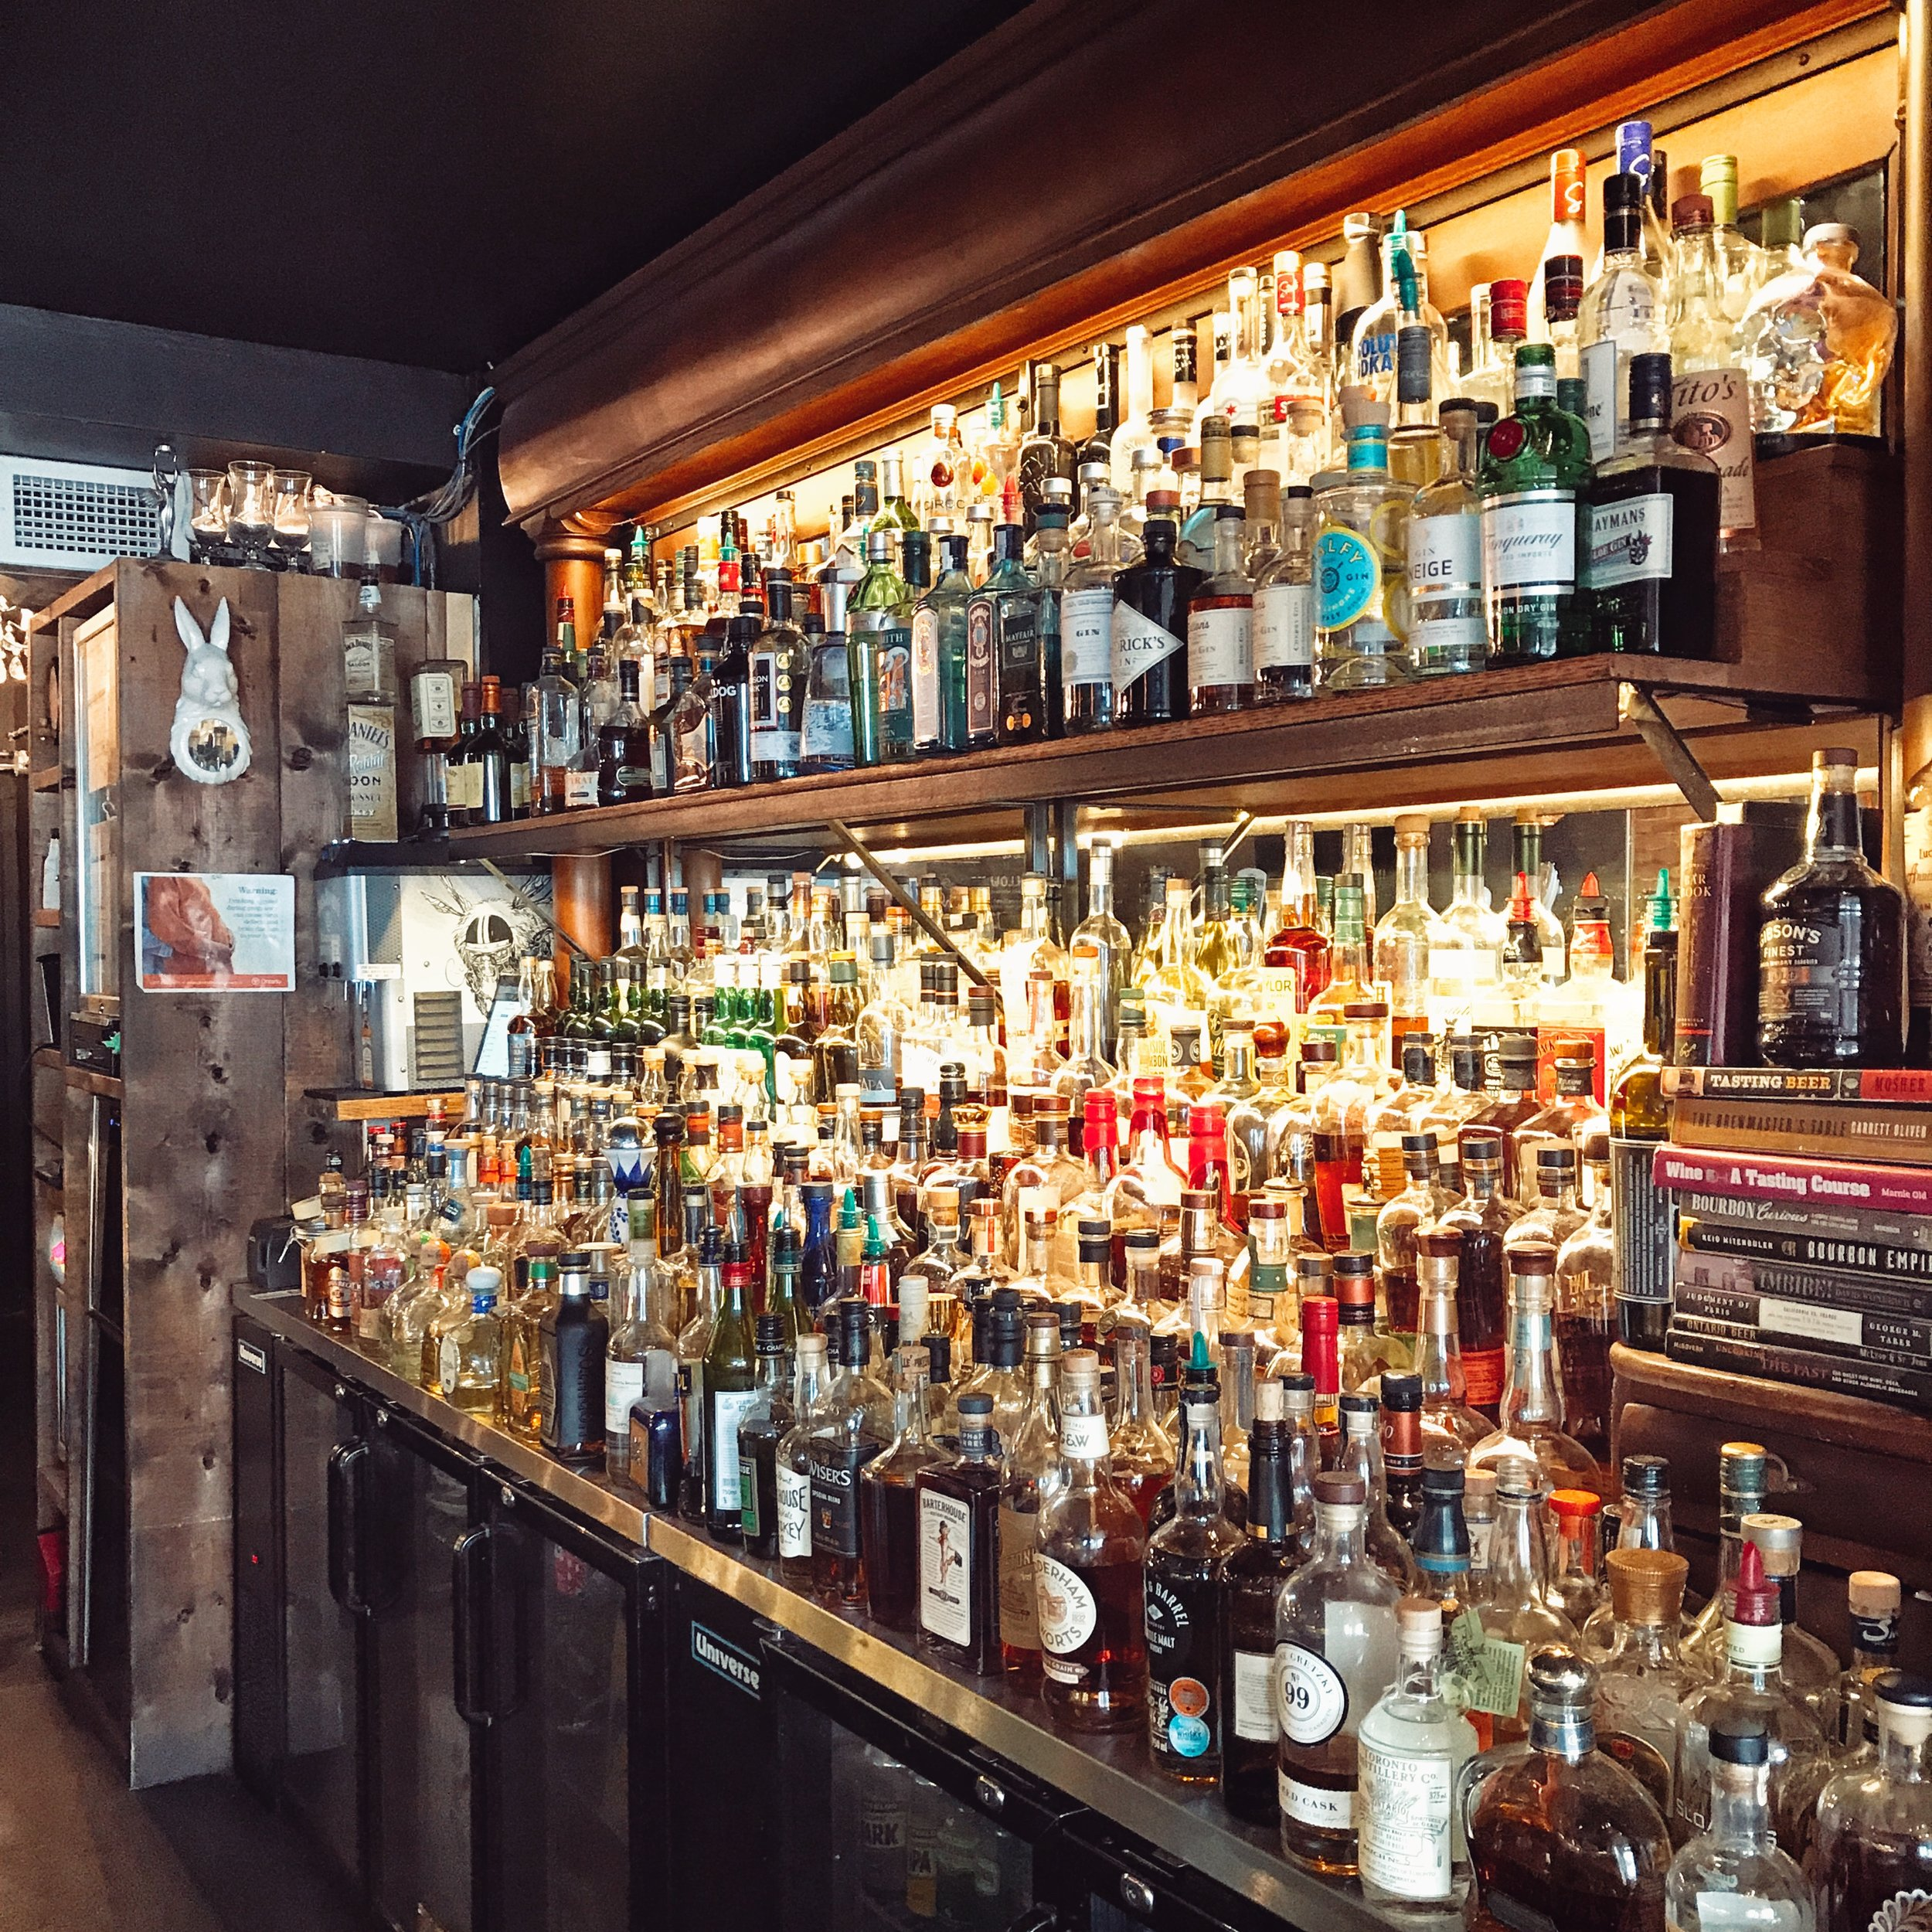 Check back for drink reviews! - White Rabbit has the largest back-bar in Ontario with over 400 unique bottles. We're definitely not going to miss the opportunity to try all of them for you!